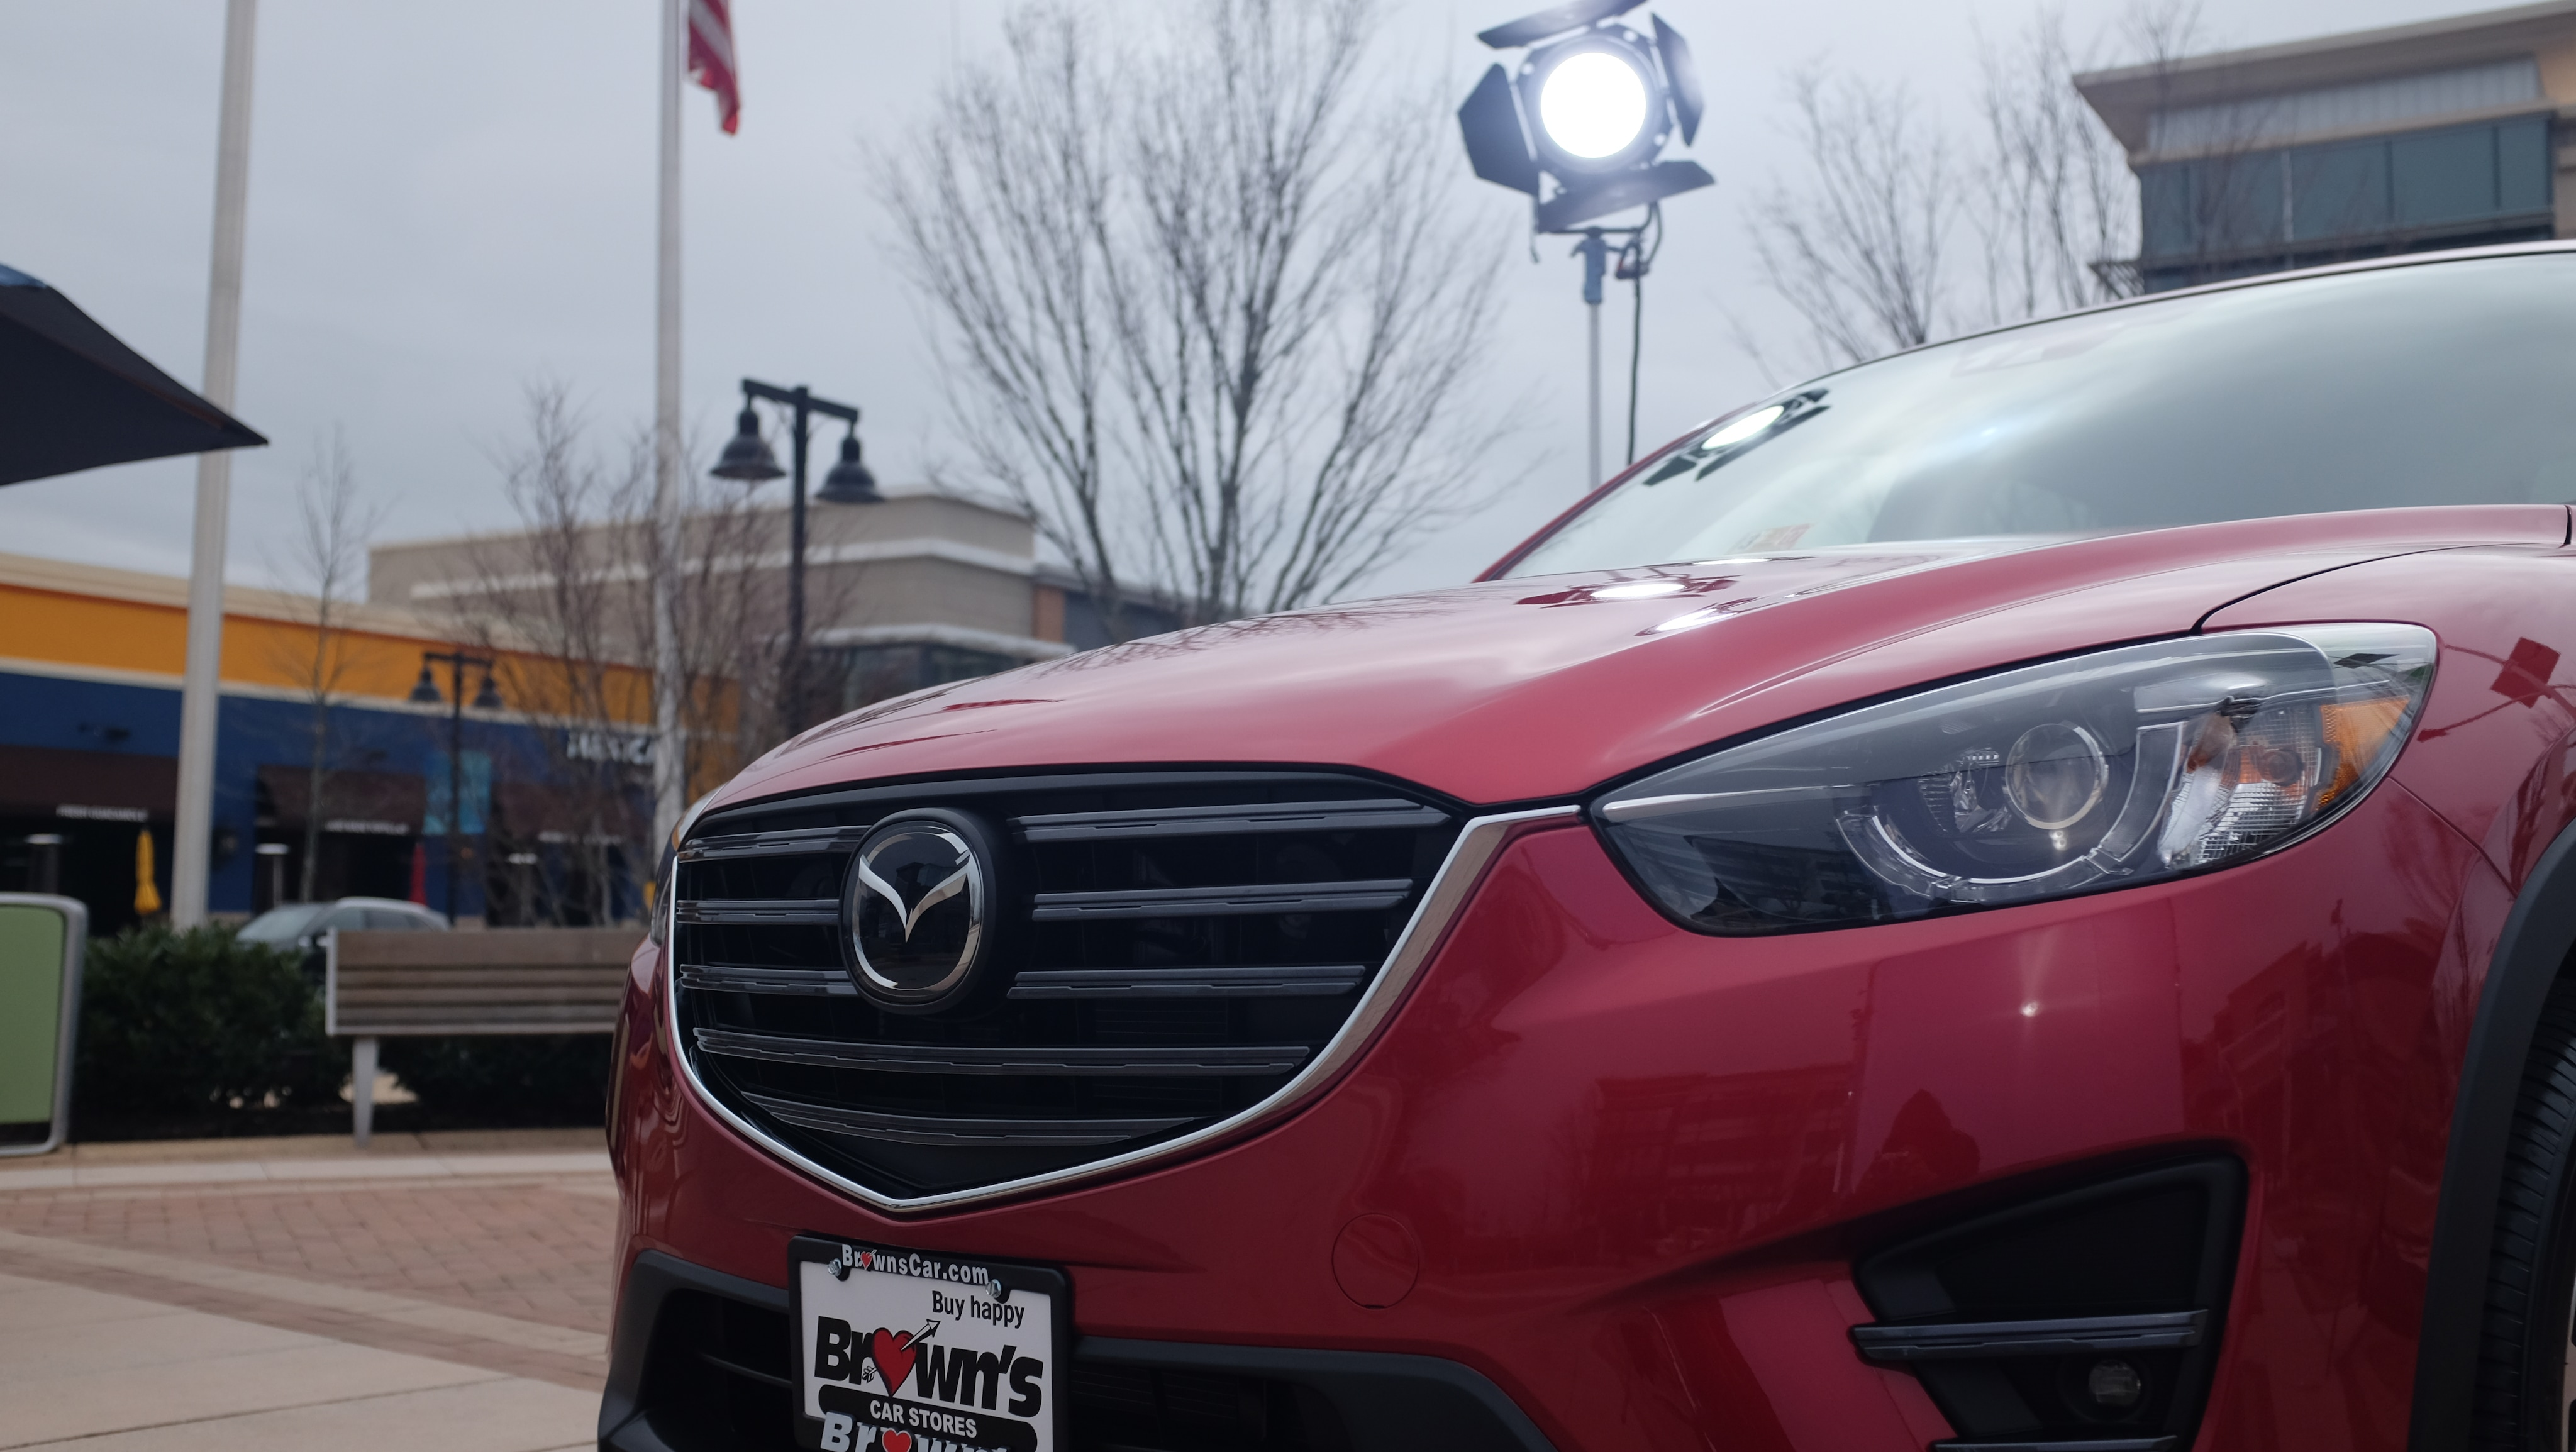 Brown S Fairfax Mazda The Mazda Cx 5 Comes To Your Screen In Our